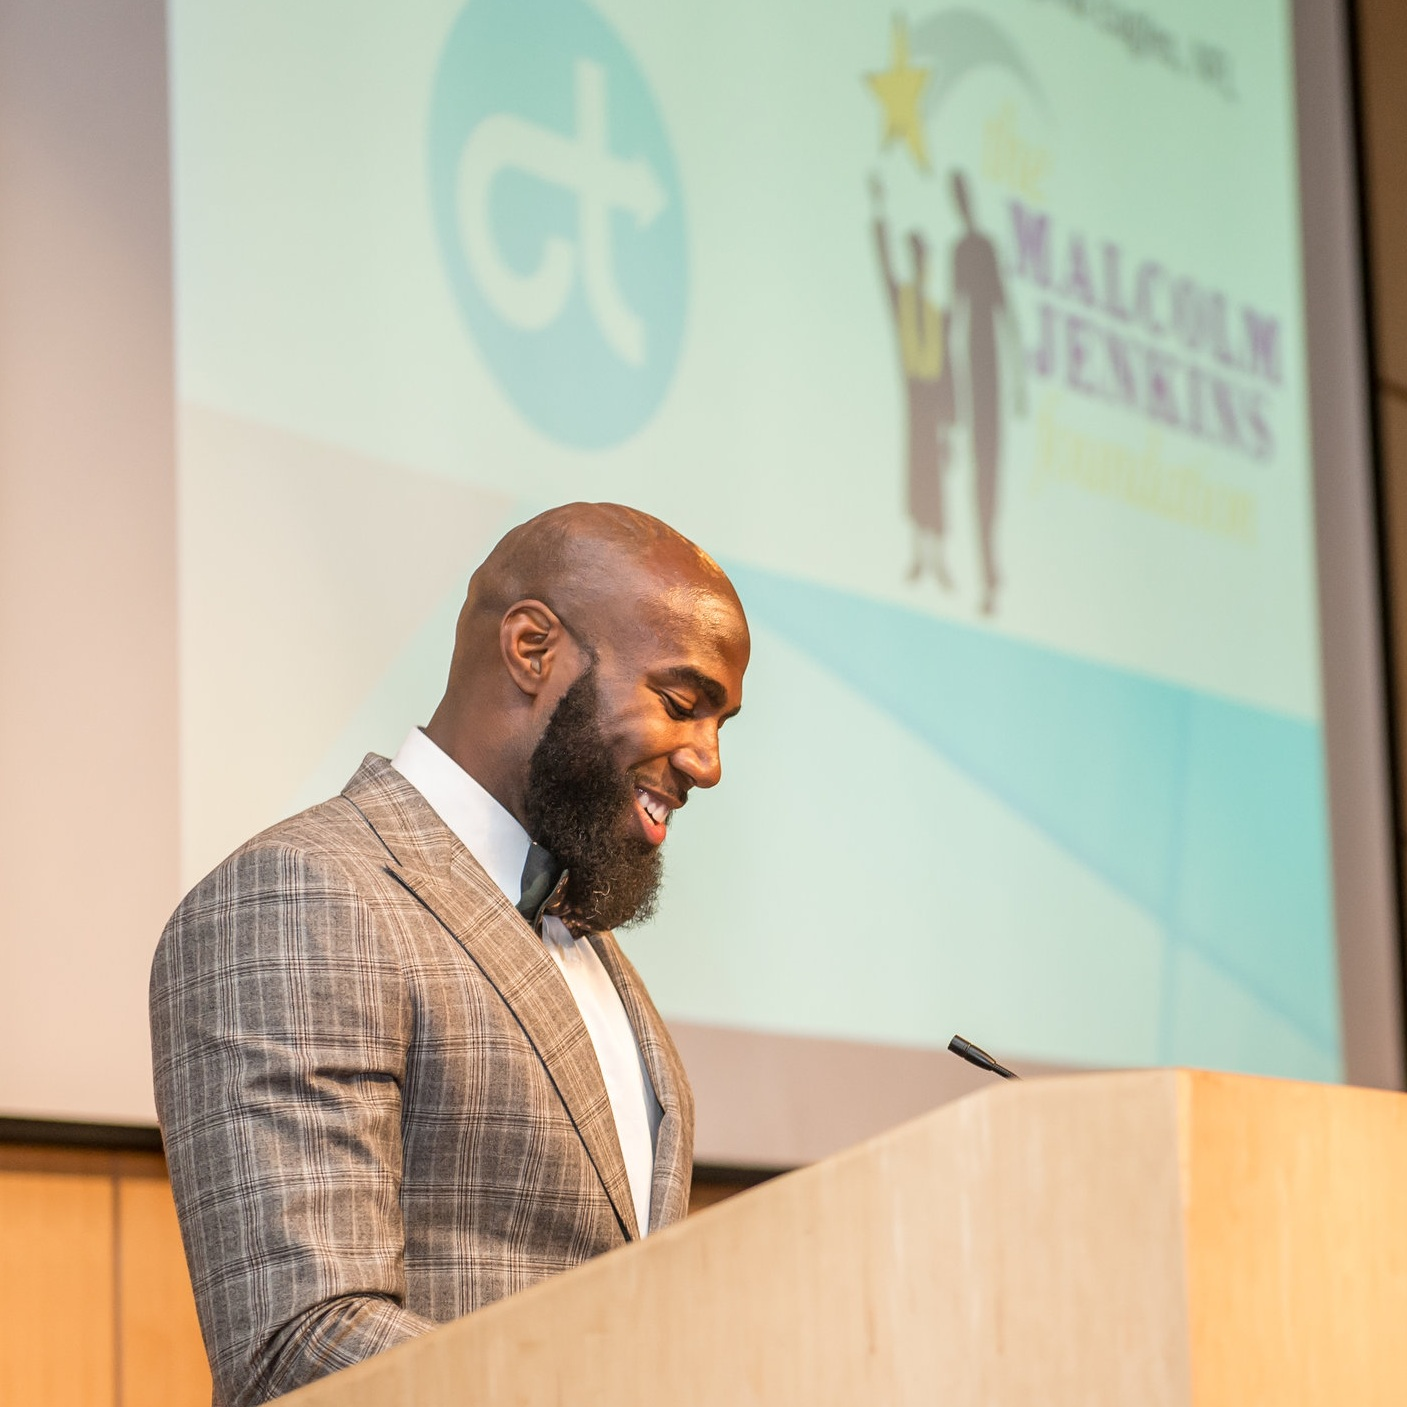 Too often… - … bright and ambitious students slip through the cracks, unable to continue their academic career due to financial roadblocks. The Malcolm Jenkins Foundation is working to close that gap.